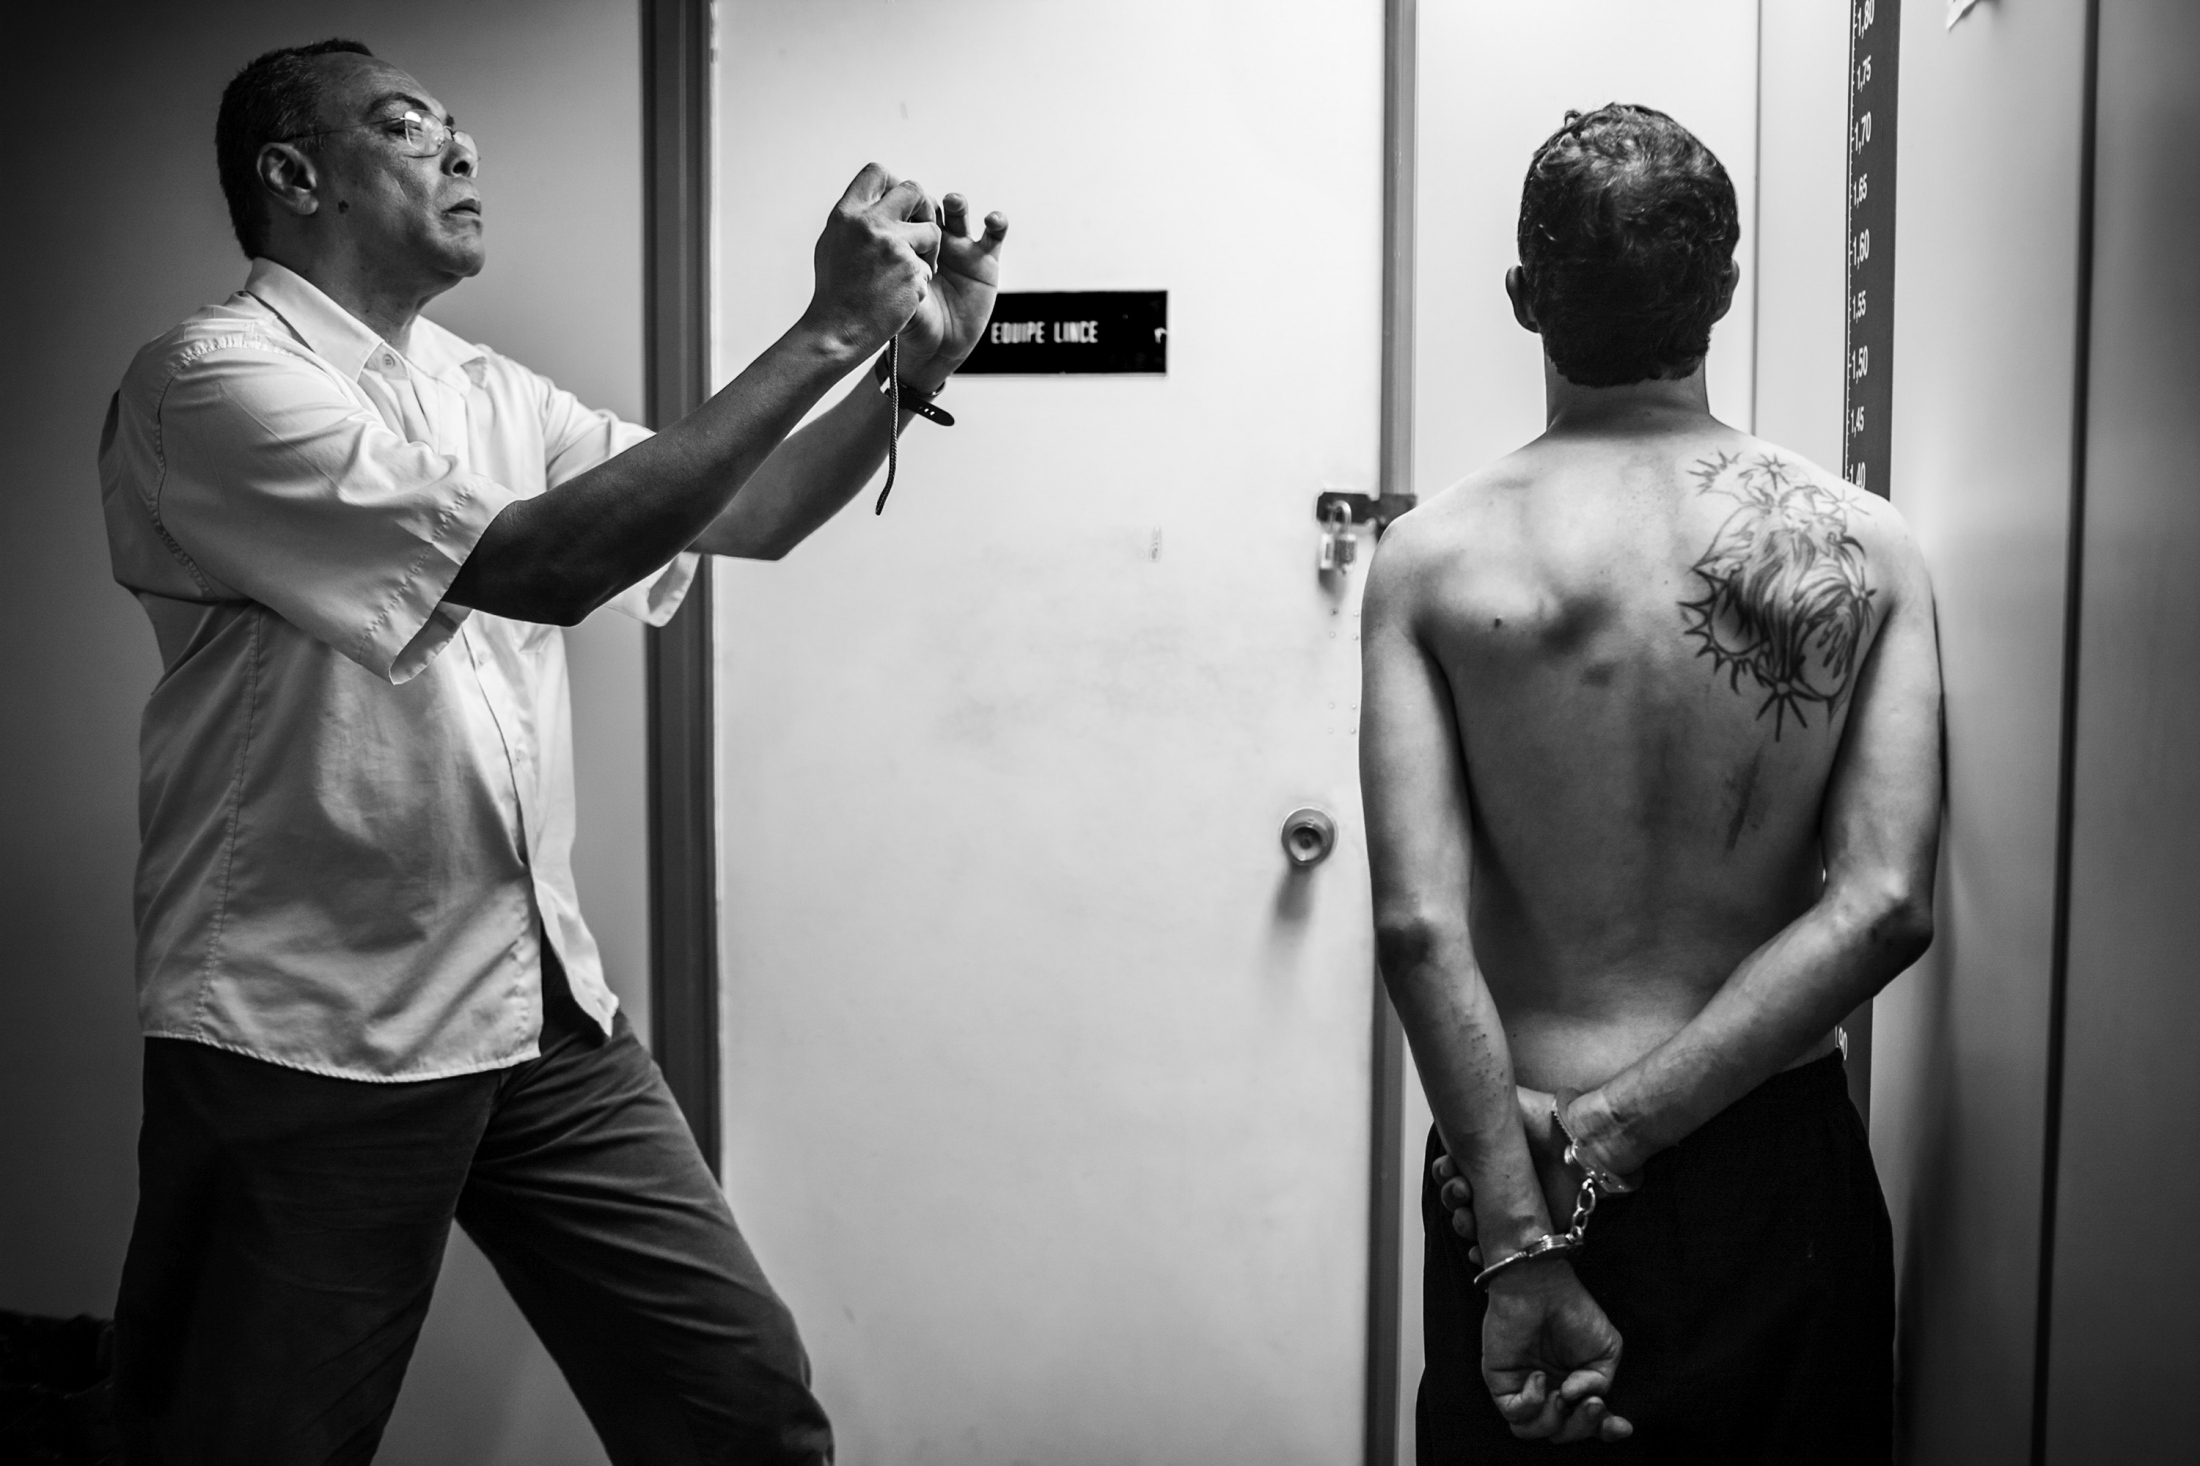 A policeman from DRAE photographs the mug shots of João Paulo da Costa, detained as a suspected drug dealer. He will await trial in detention. February 2008.